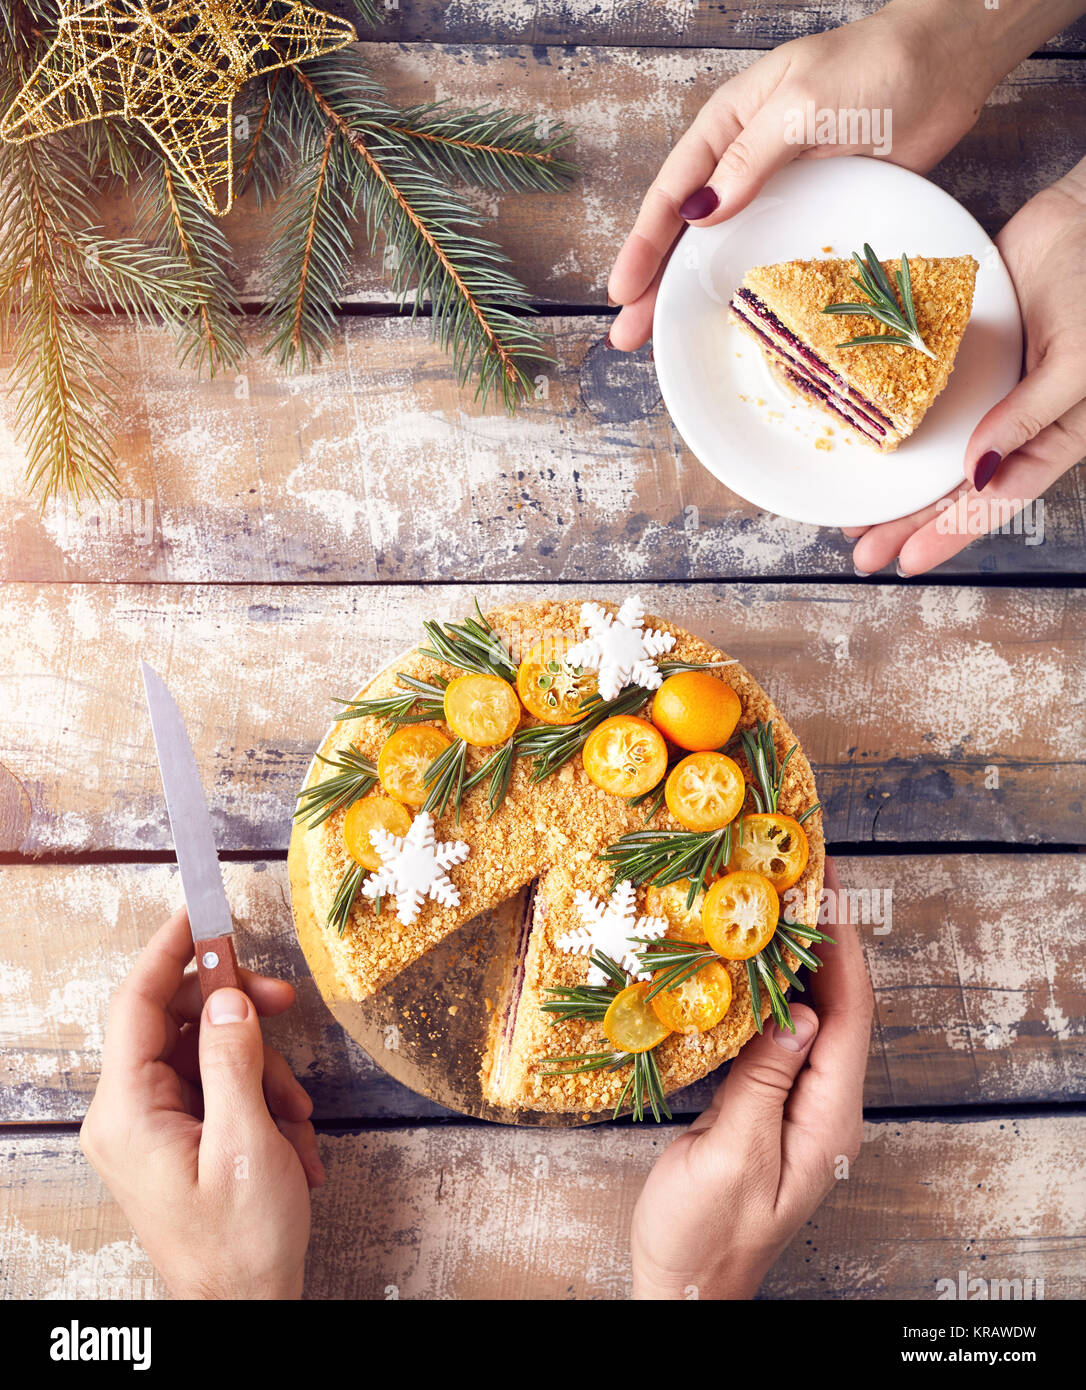 Man cut Christmas Honey cake and woman holding piece on the plate at breakfast. Stock Photo